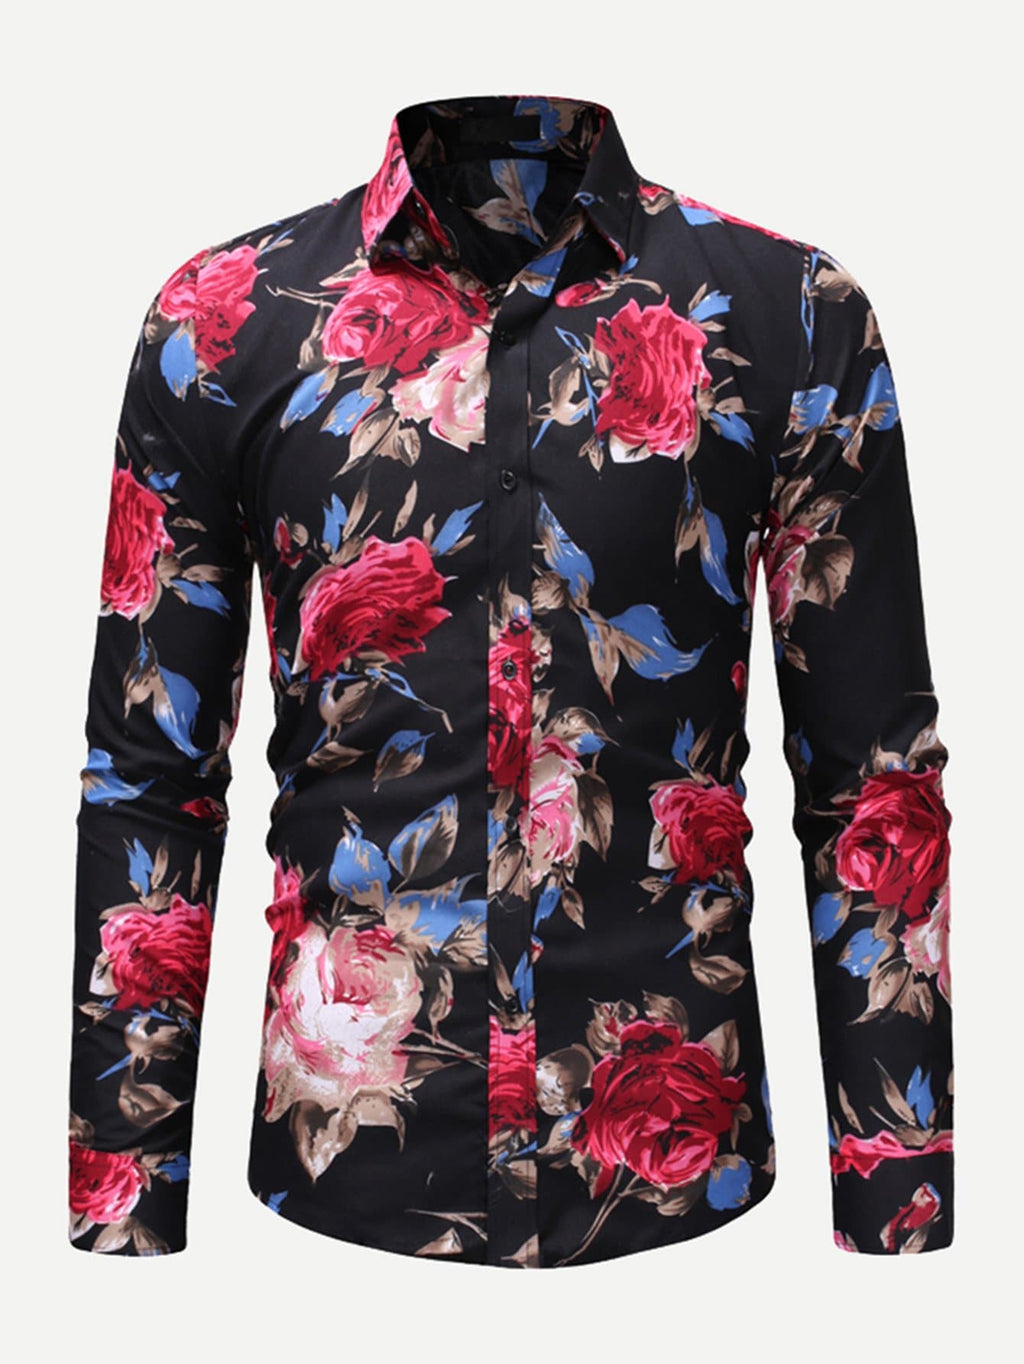 Holiday Shirts For Men - Men Allover Floral Print Shirt